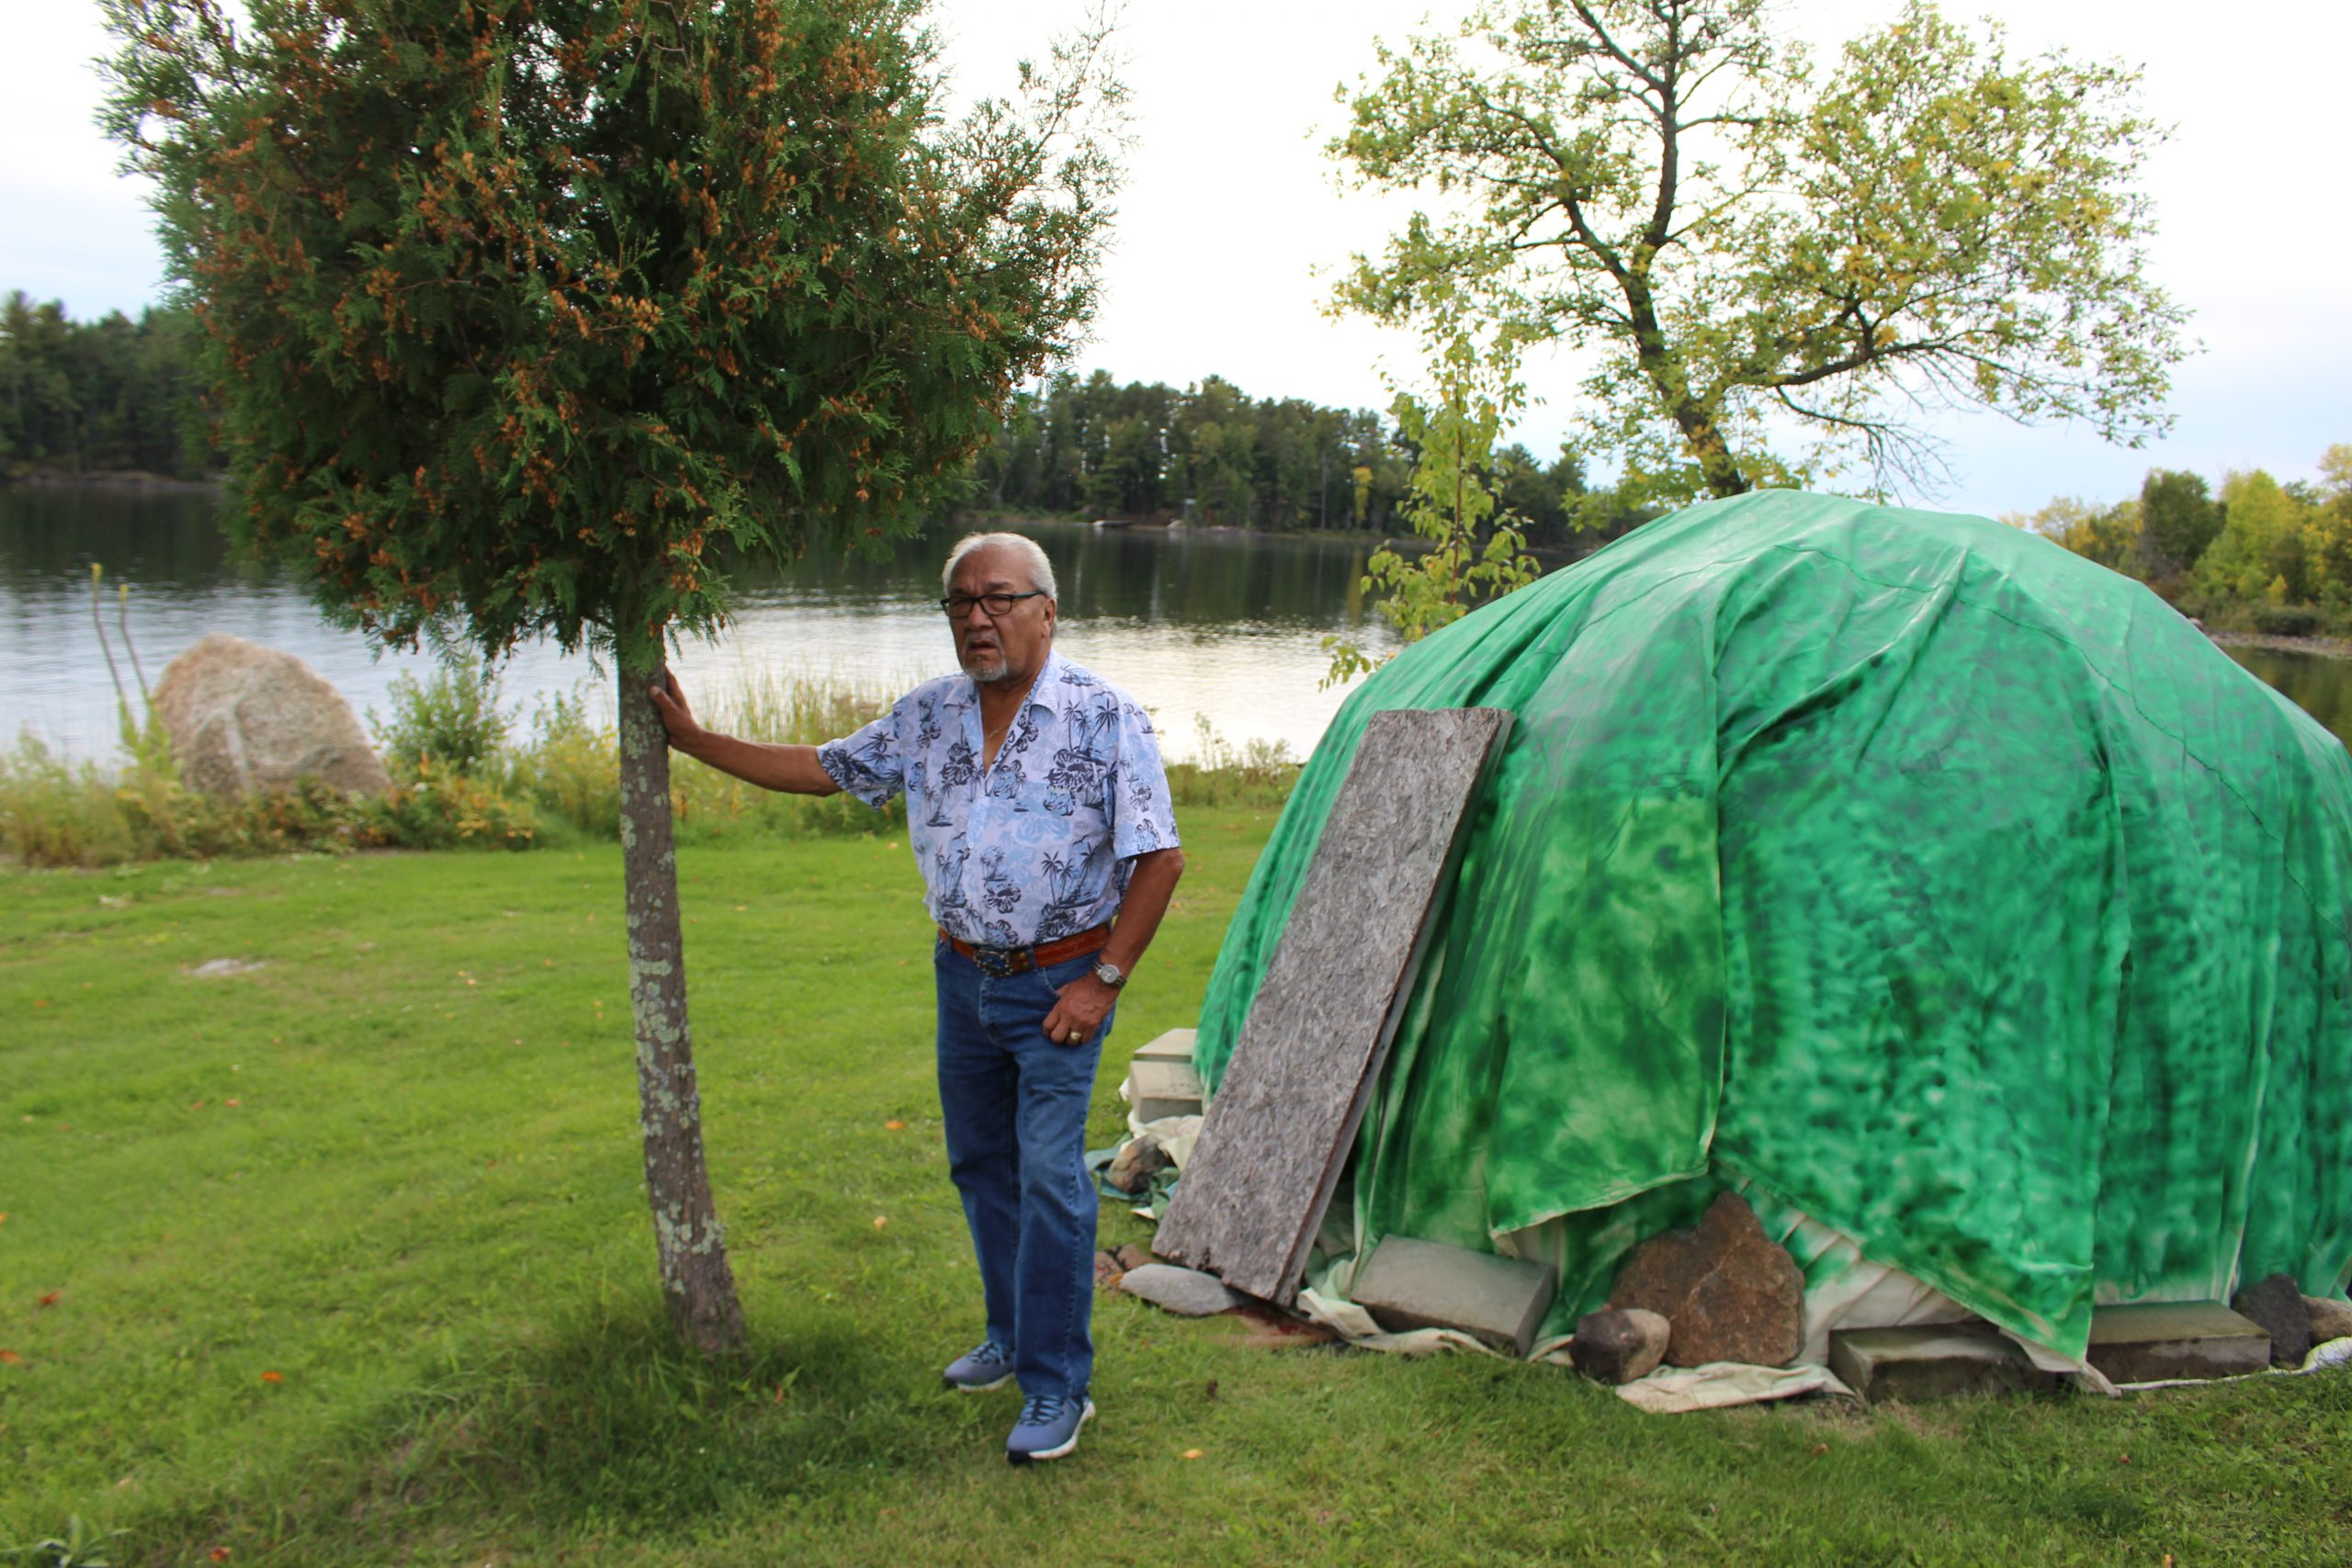 Indigenous elder offers help through knowledge and experience